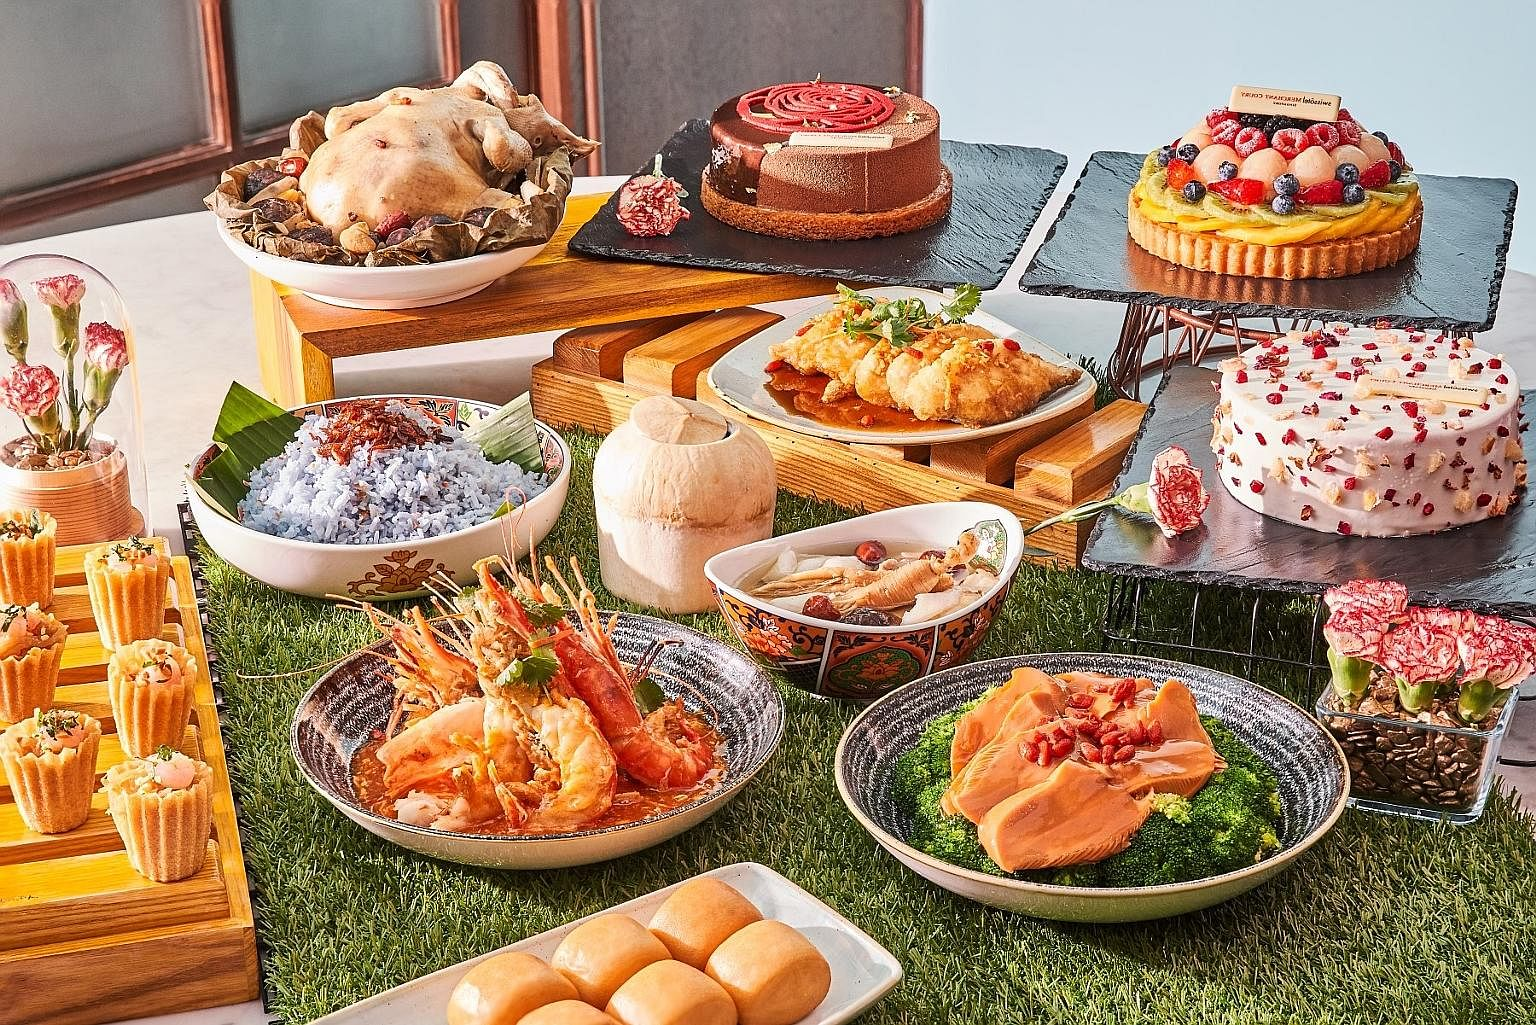 The Peranakan set meals from Ellenborough Market Cafe also come in special gourmet bundles, which can feed four or six diners. SPH subscribers can get a 20 per cent discount off these bundles.